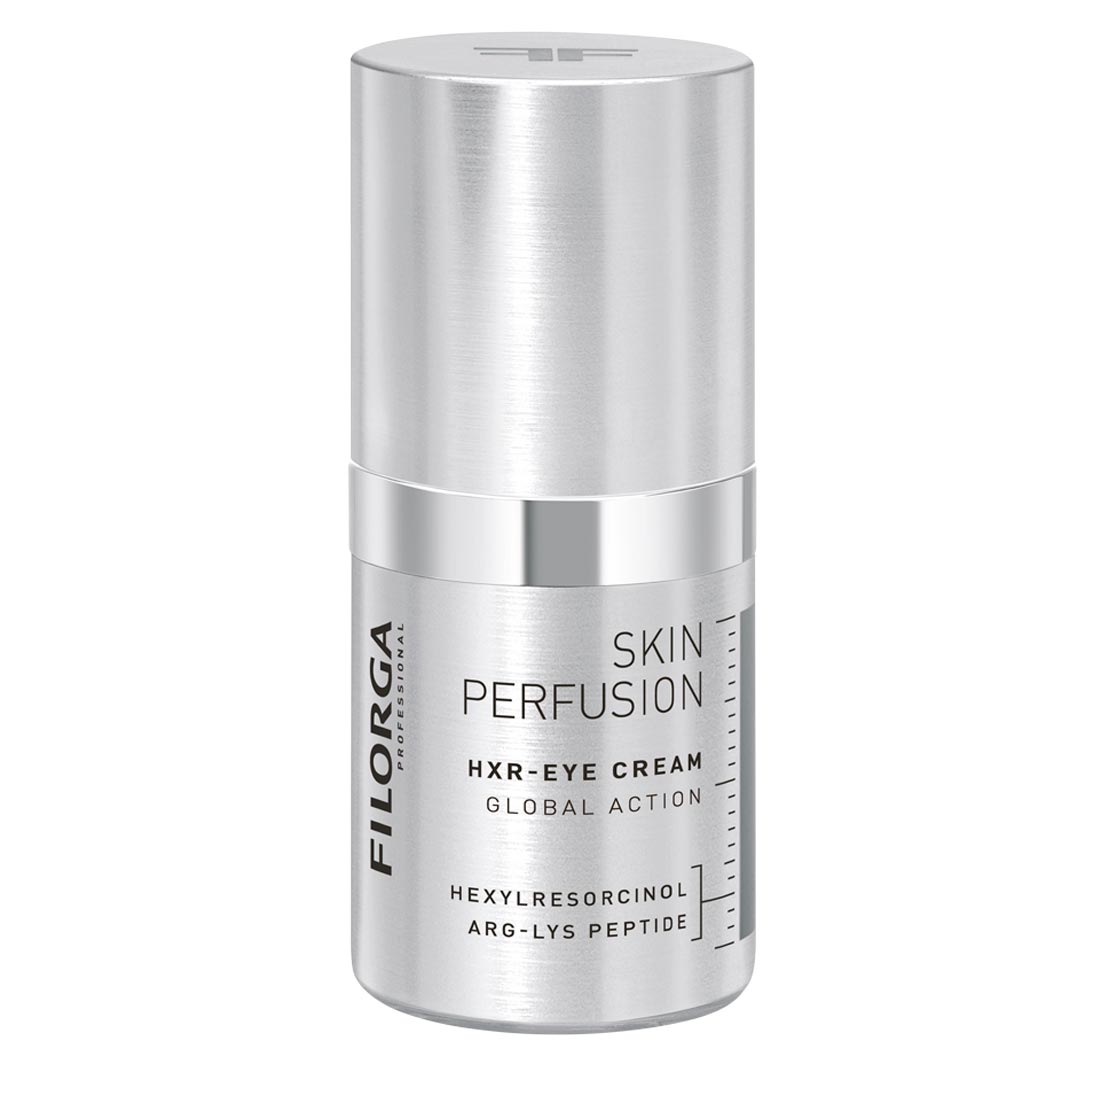 SKIN PERFUSION HXR-EYE CREAM 1